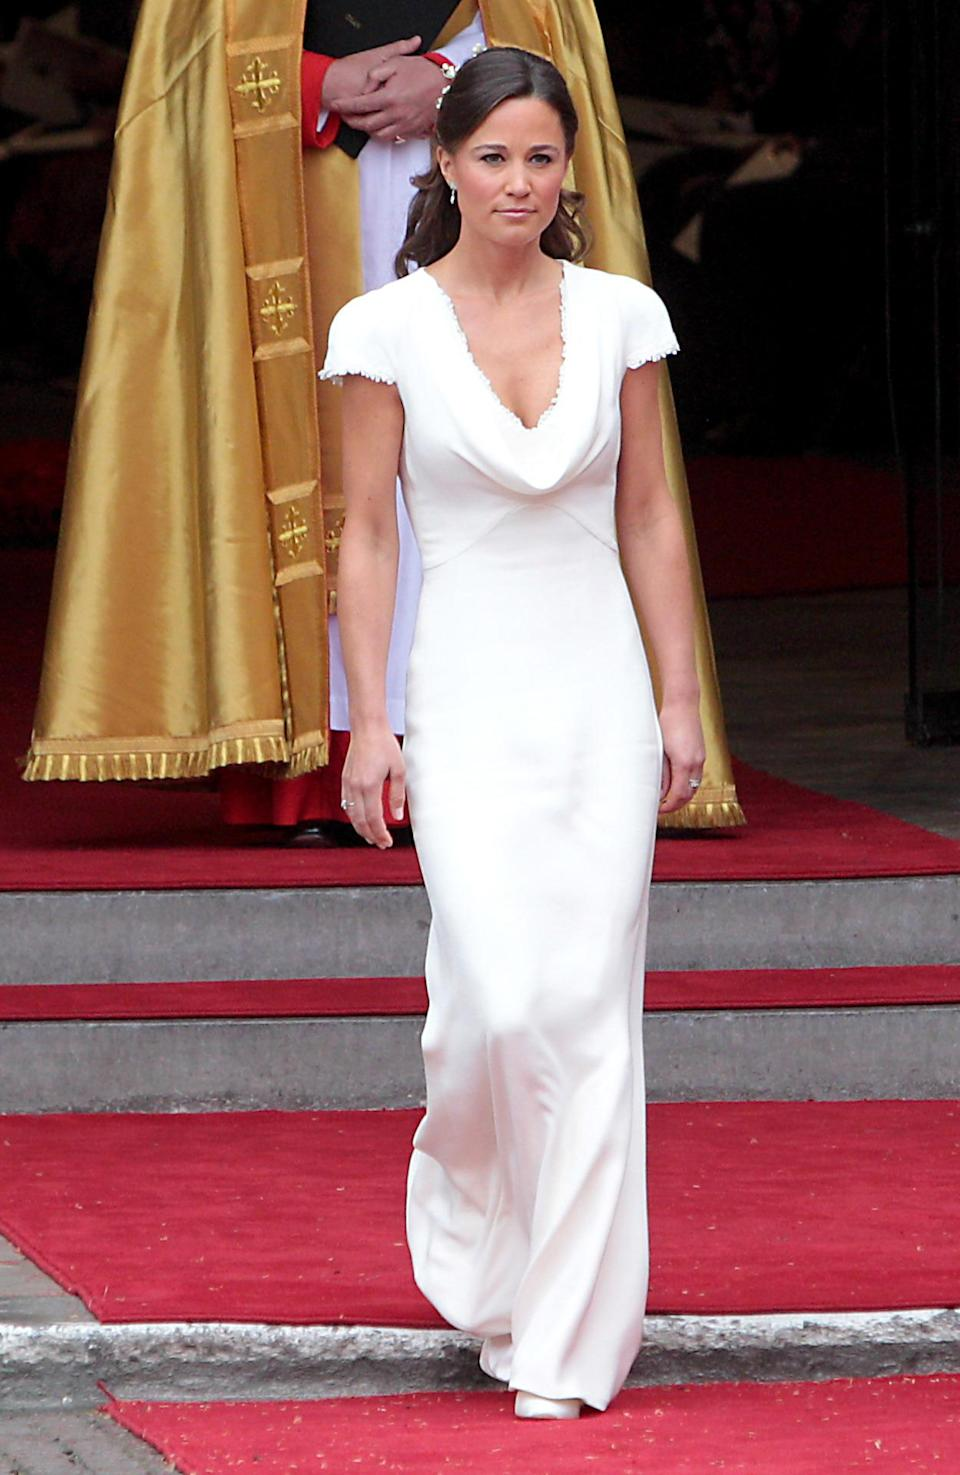 <p>Just like Kate, Pippa wore a custom made Alexander McQueen number for the wedding of the decade. The crisp, white dress featured a cowl neck design, cap sleeves and a fishtail skirt. <i>[Photo: Rex]</i> </p>